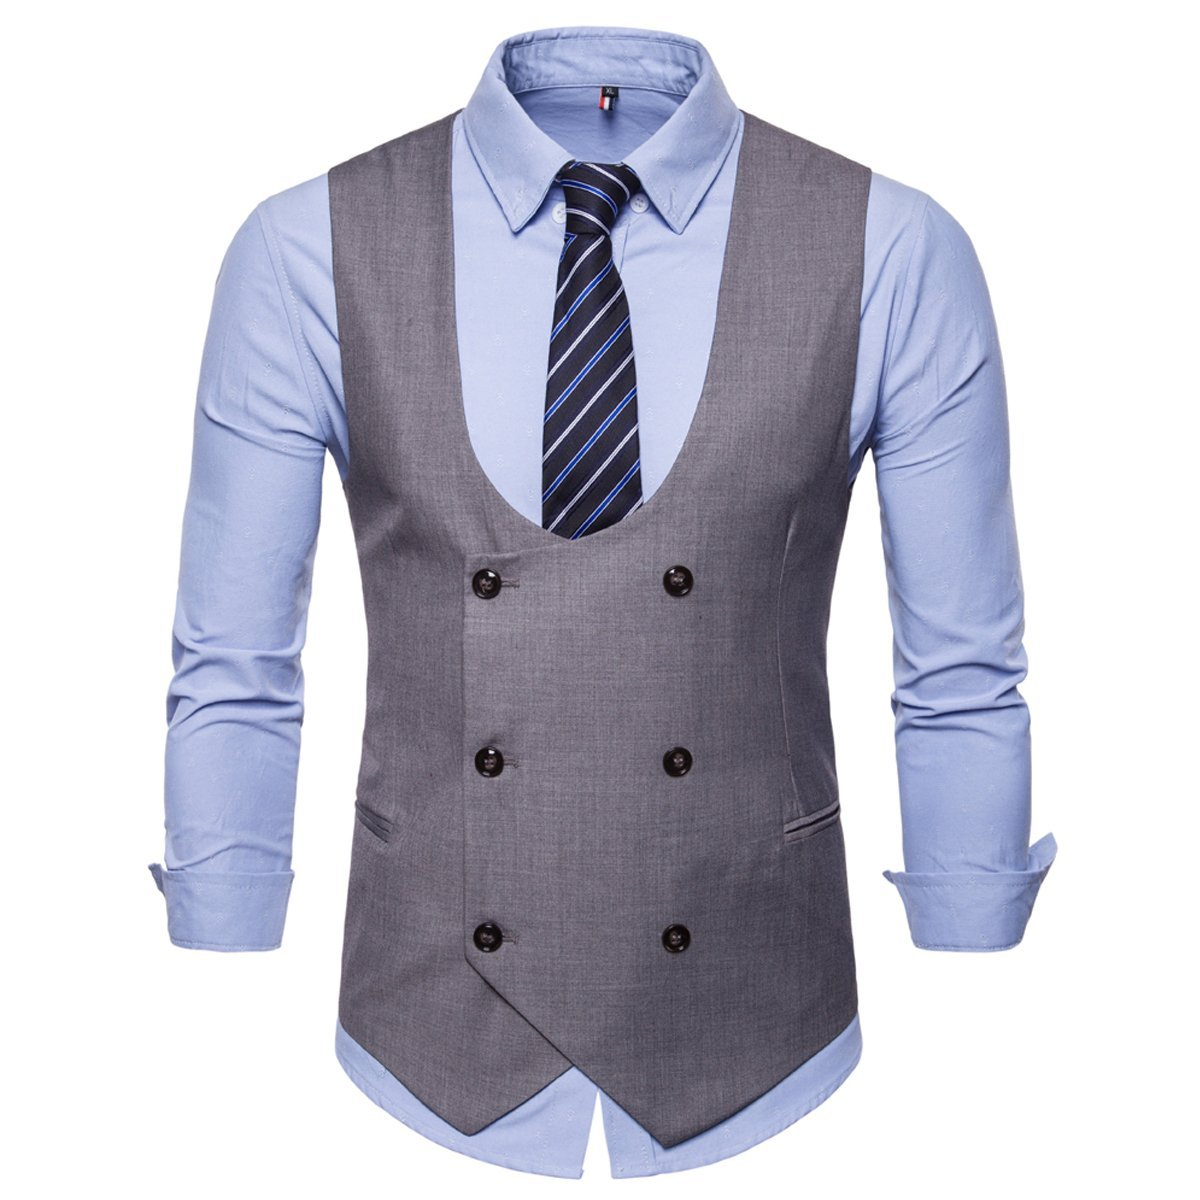 INVACHI Summer Slim Fit Mens Double Breasted Business Casual Waistcoat